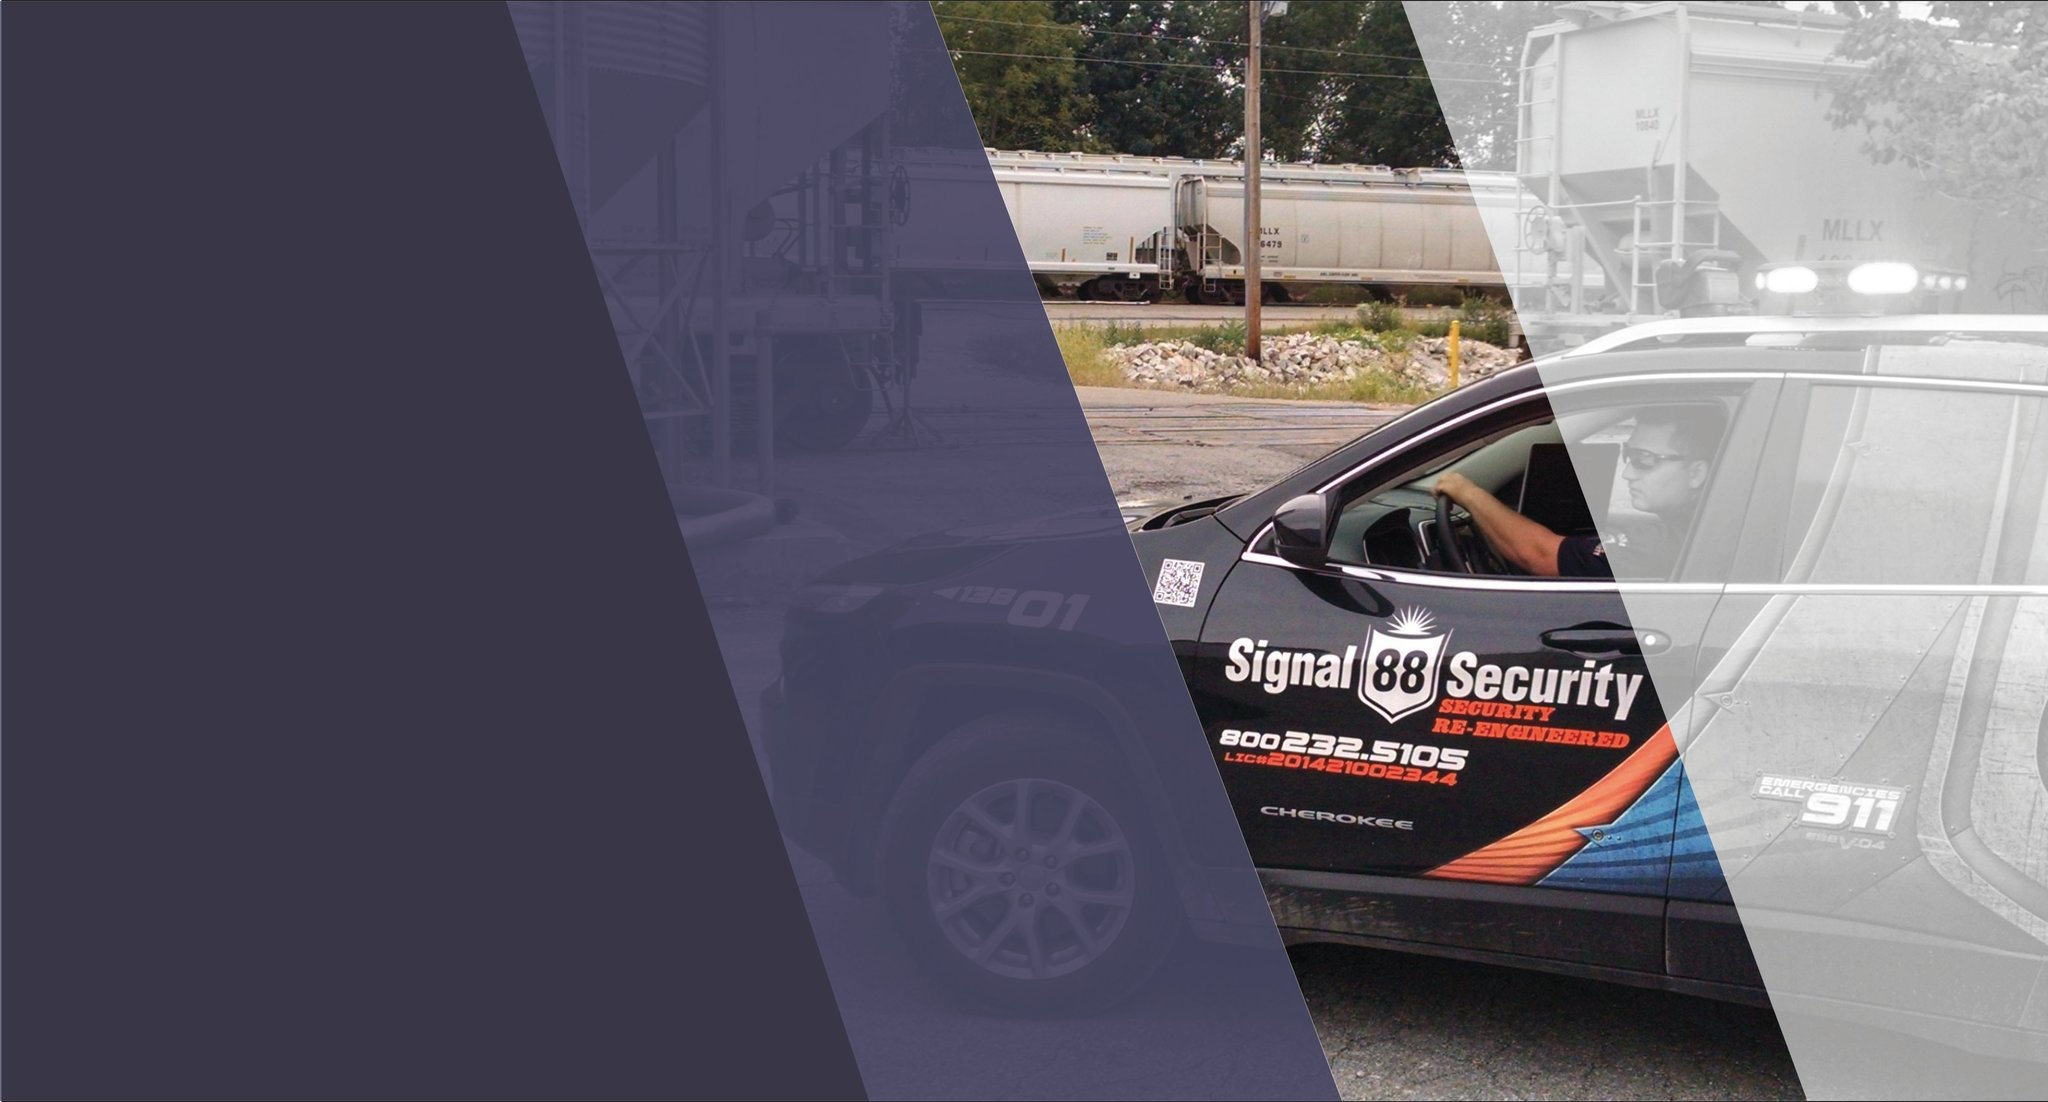 Signal 88 Pushes Security Forward with TrackTik